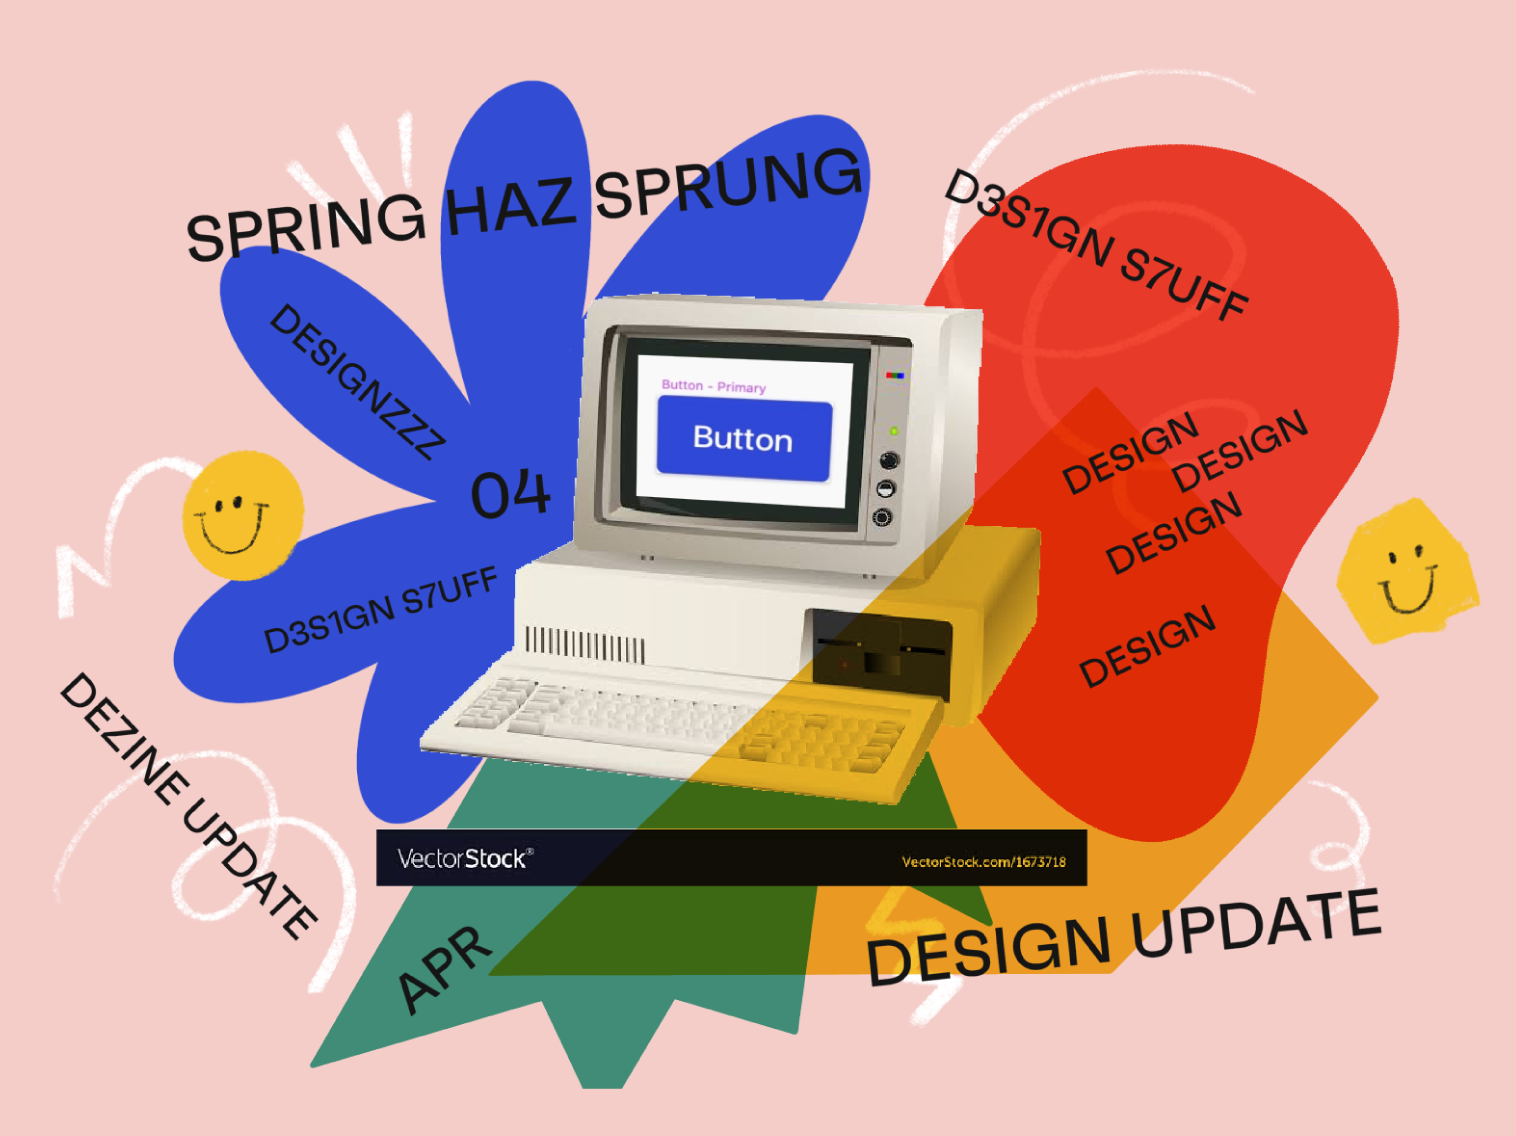 DESIGN STUFF 90s type flowers computers primary colors colors cute faces smiley face ux ui collage design